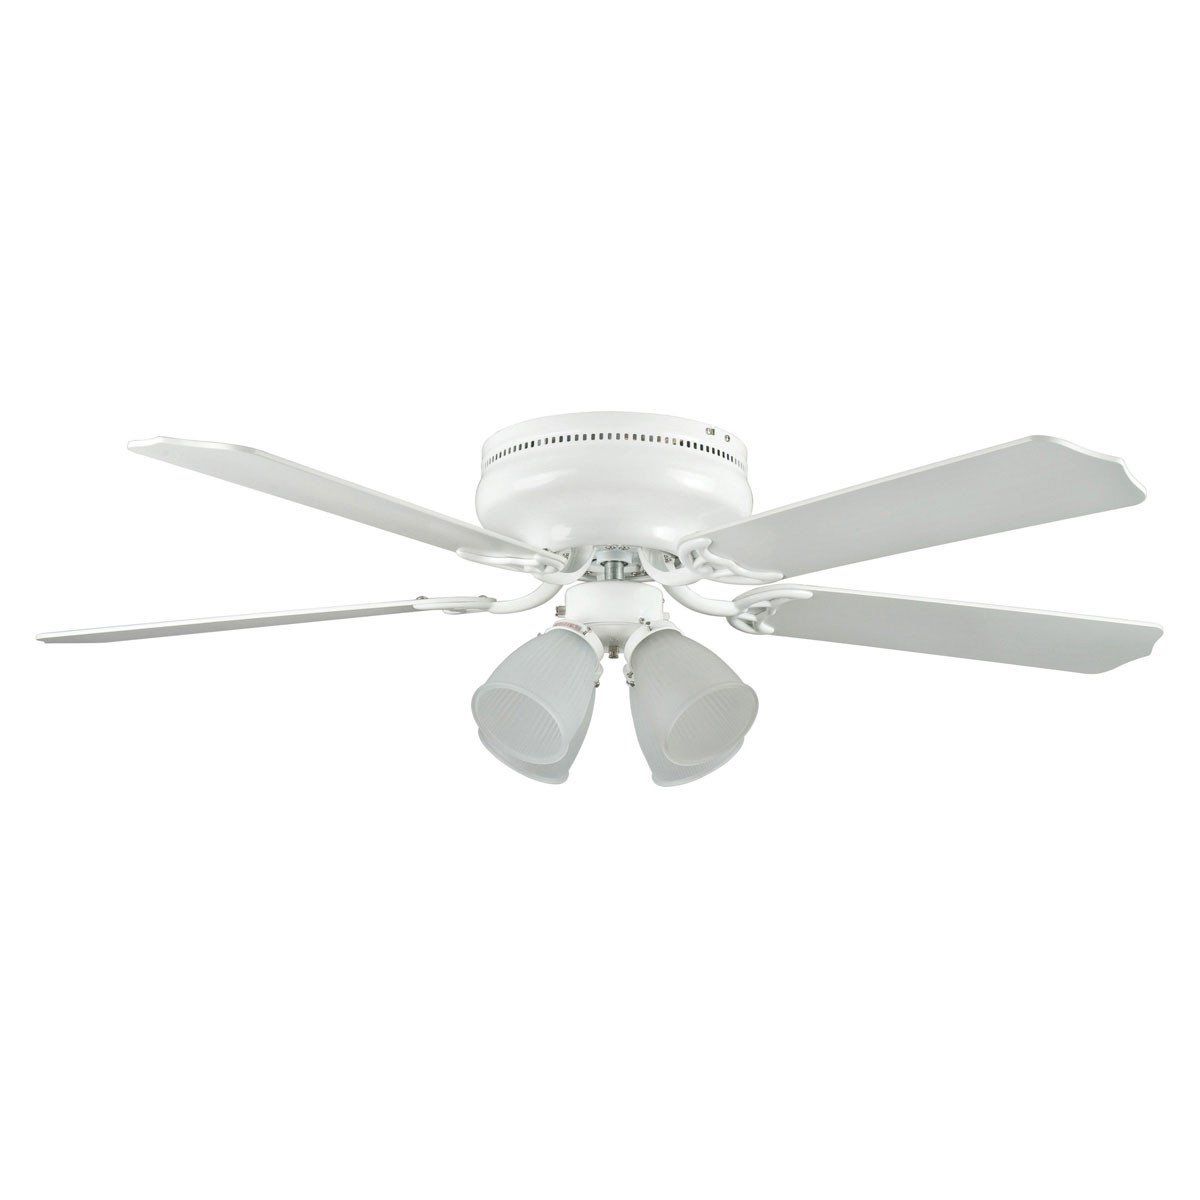 "Concord Fans 52"" Motego Bay White Hugger Ceiling Fan with 4 Light Kit"